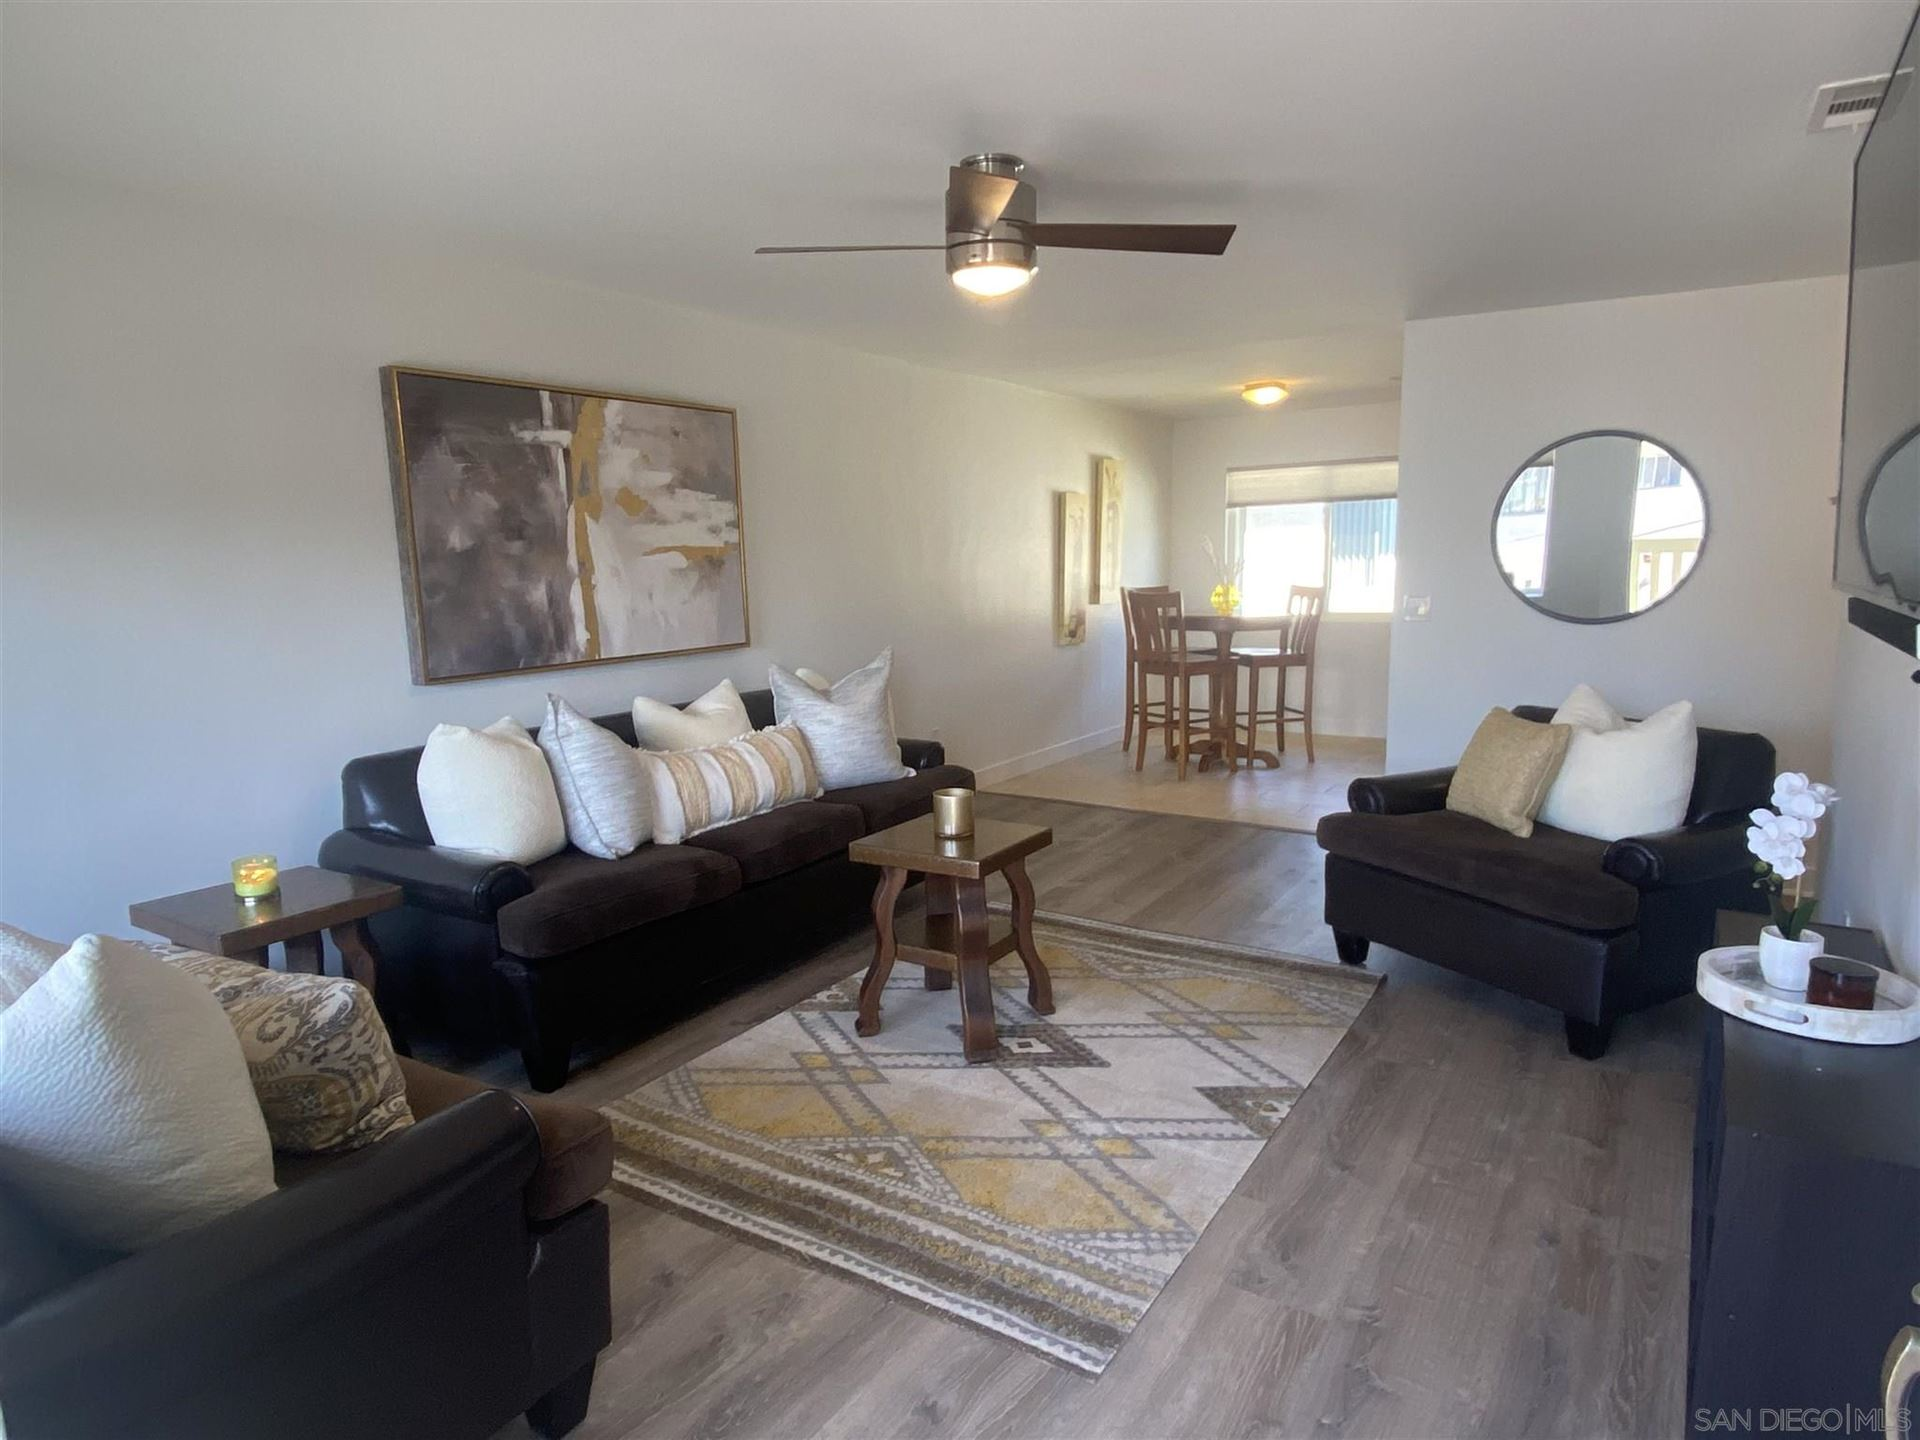 Photo for 4569 Florida St #6, San Diego, CA 92116 (MLS # 210007513)